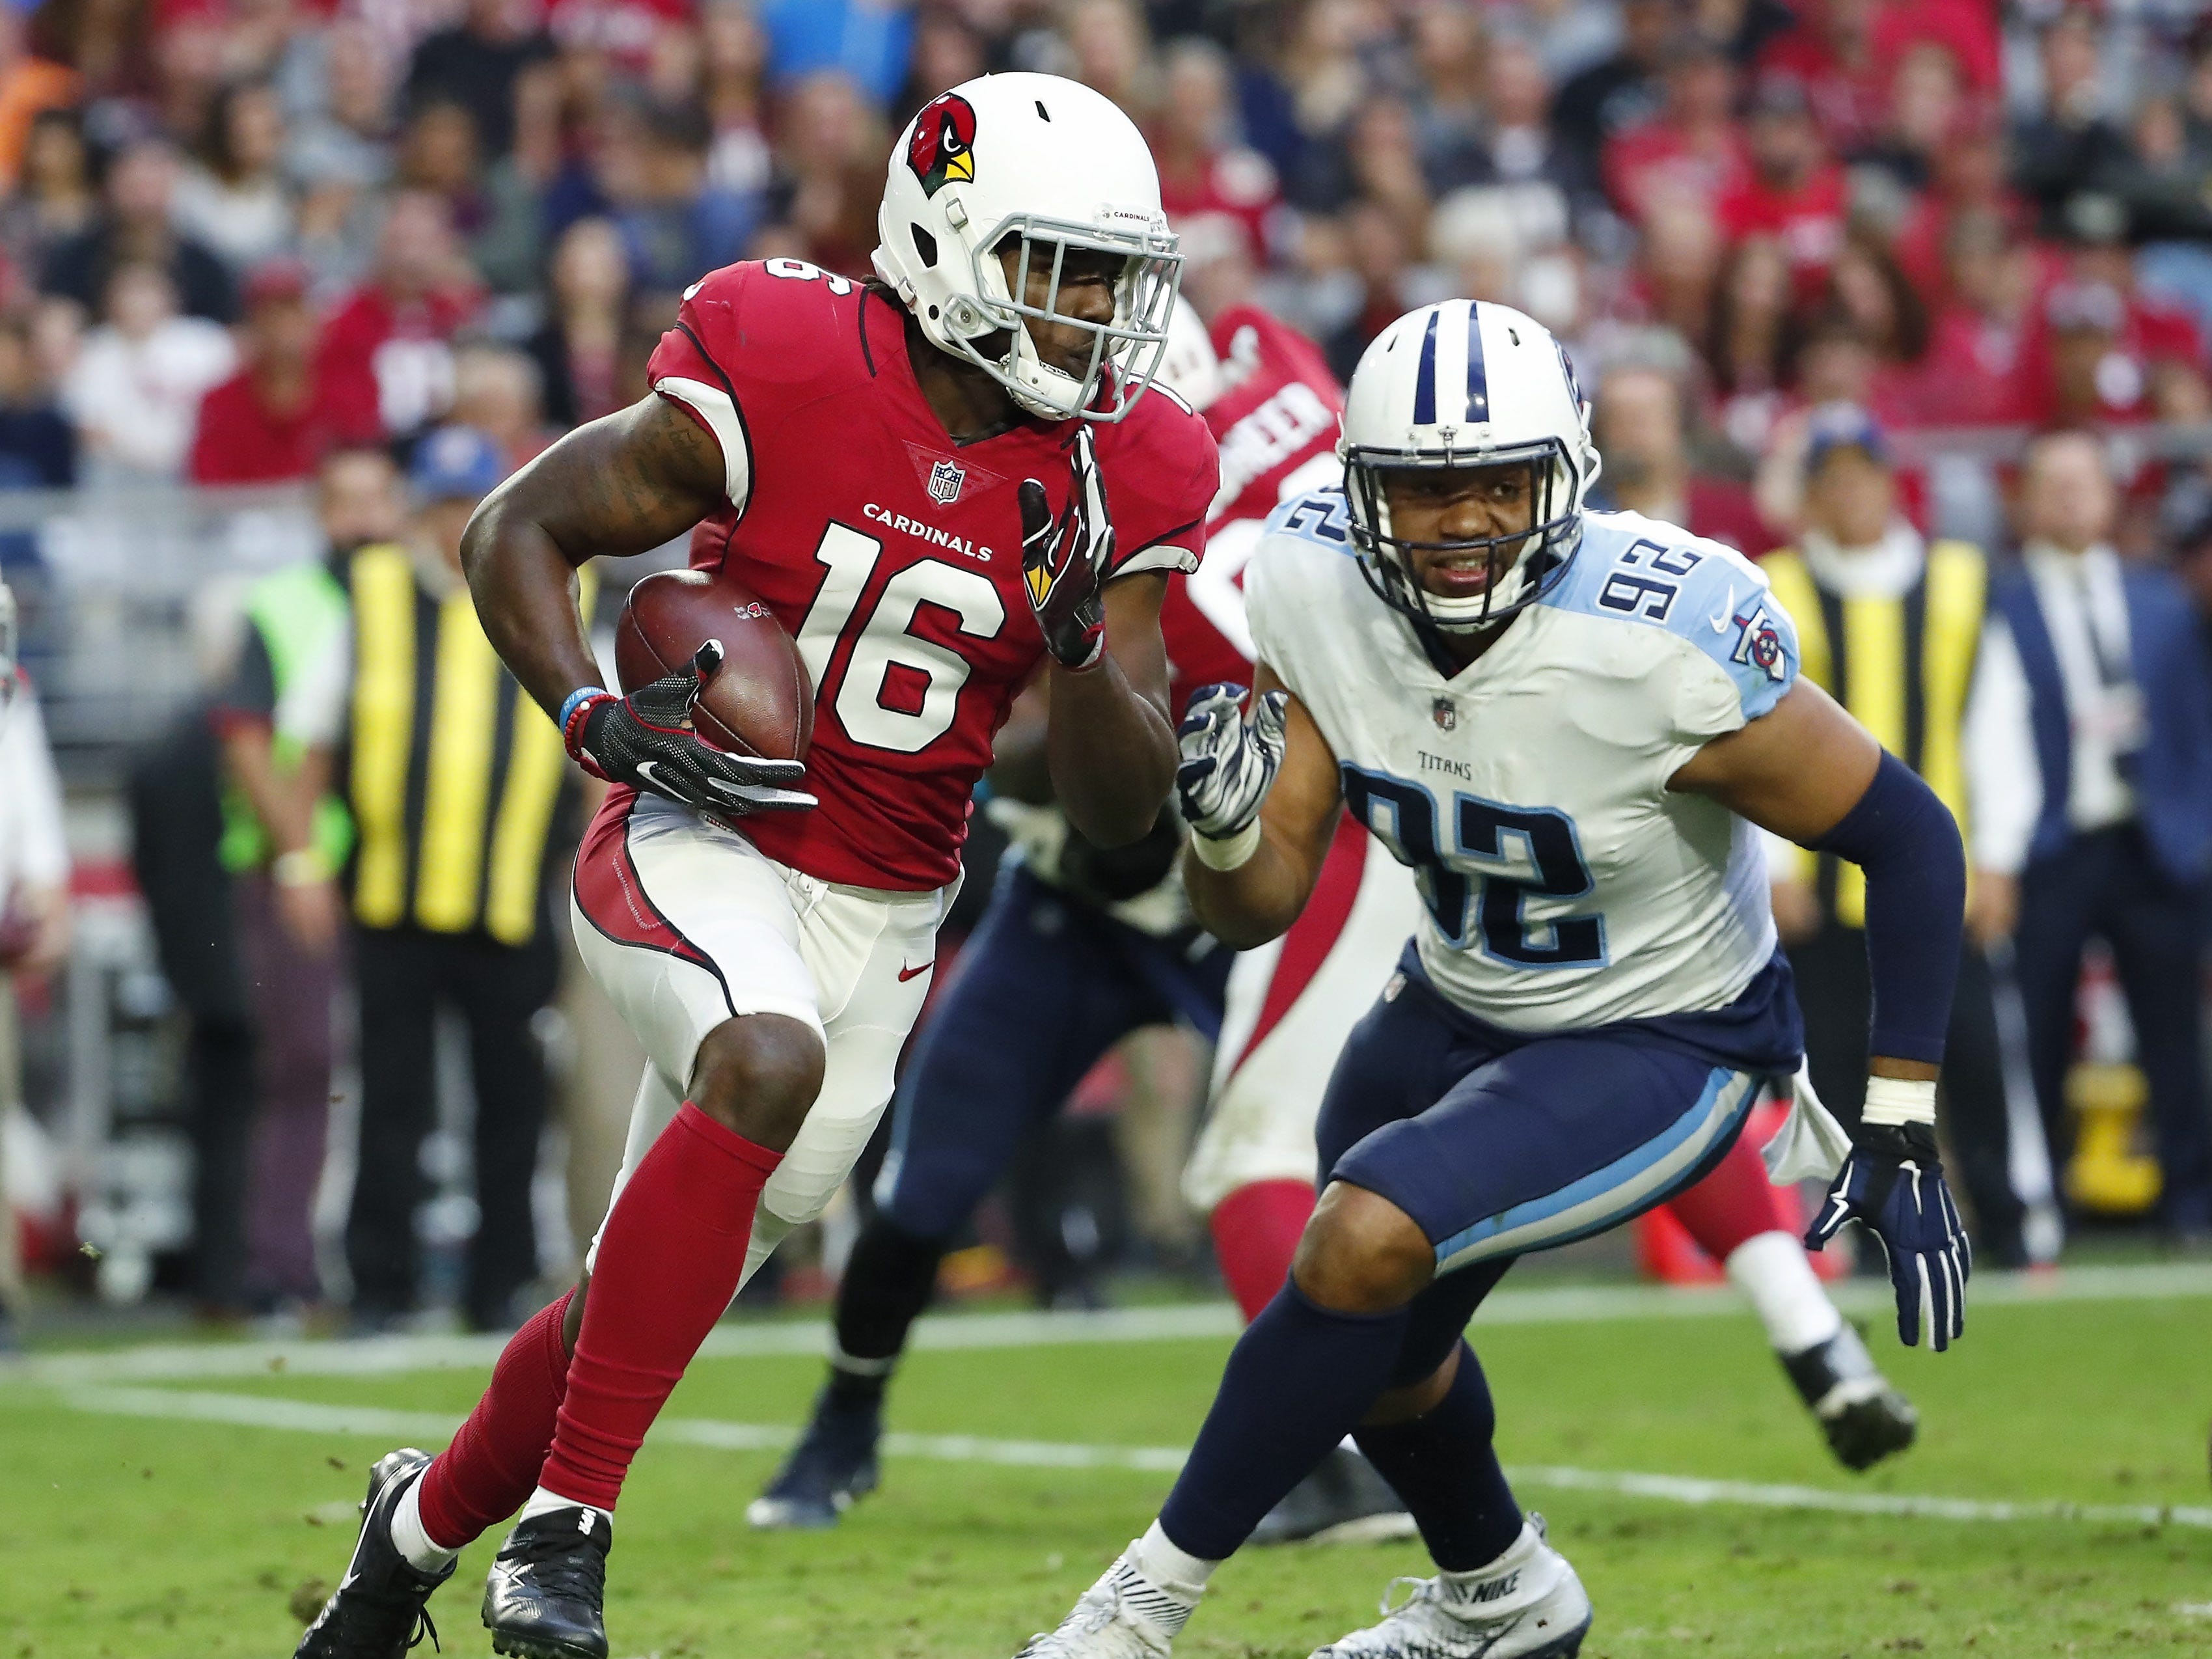 Cardinals receiver Chad Williams runs with the ball past Titans linebacker Kevin Dodd during a game against Tennessee on Dec. 10, 2017 at University of Phoenix Stadium.